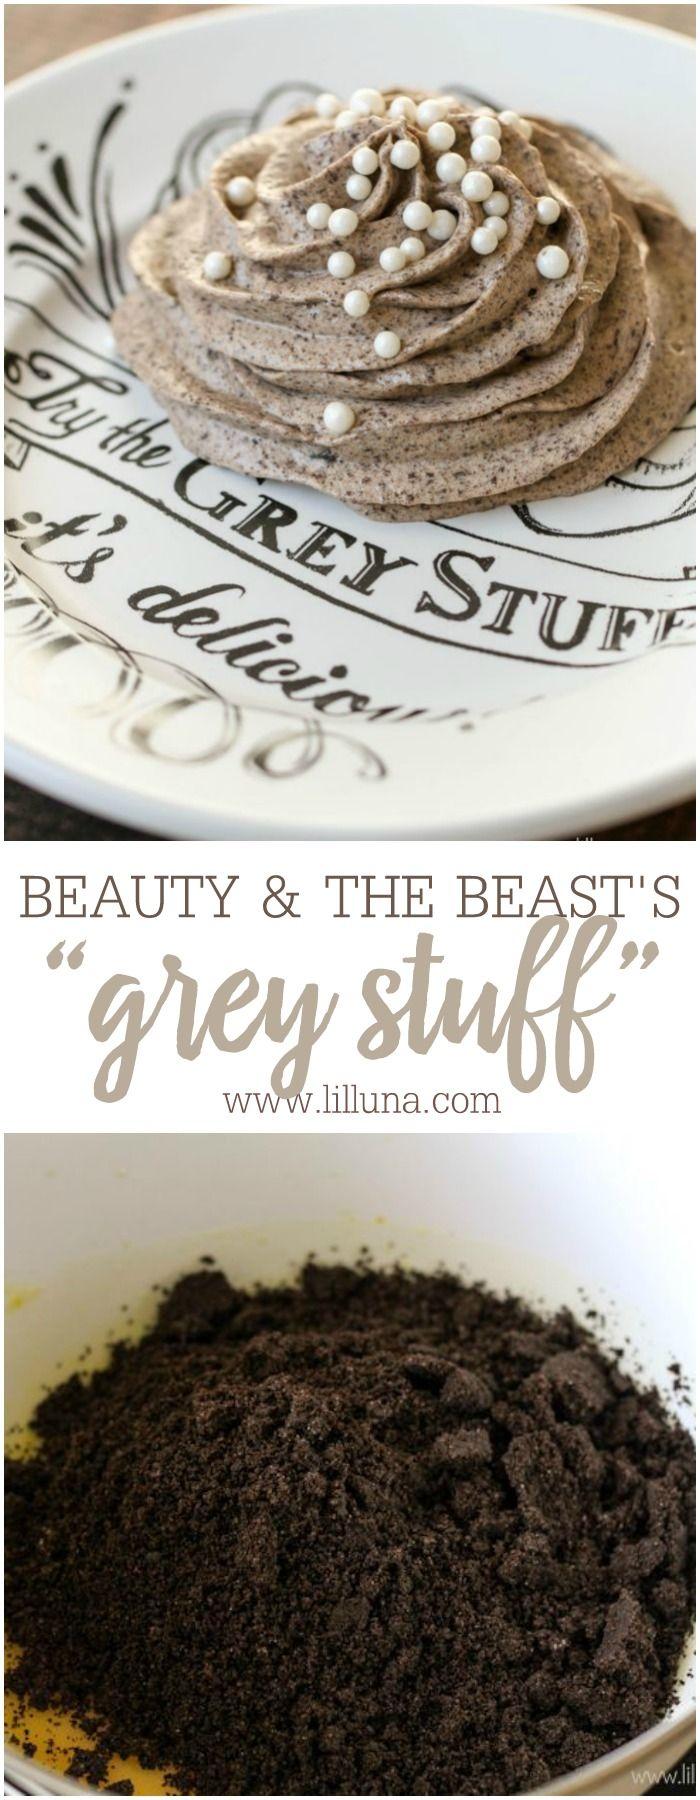 """Beauty and the Beast's """"Grey Stuff"""" recipe! This Oreo dessert is served at Disney World and now you can make it at home!"""